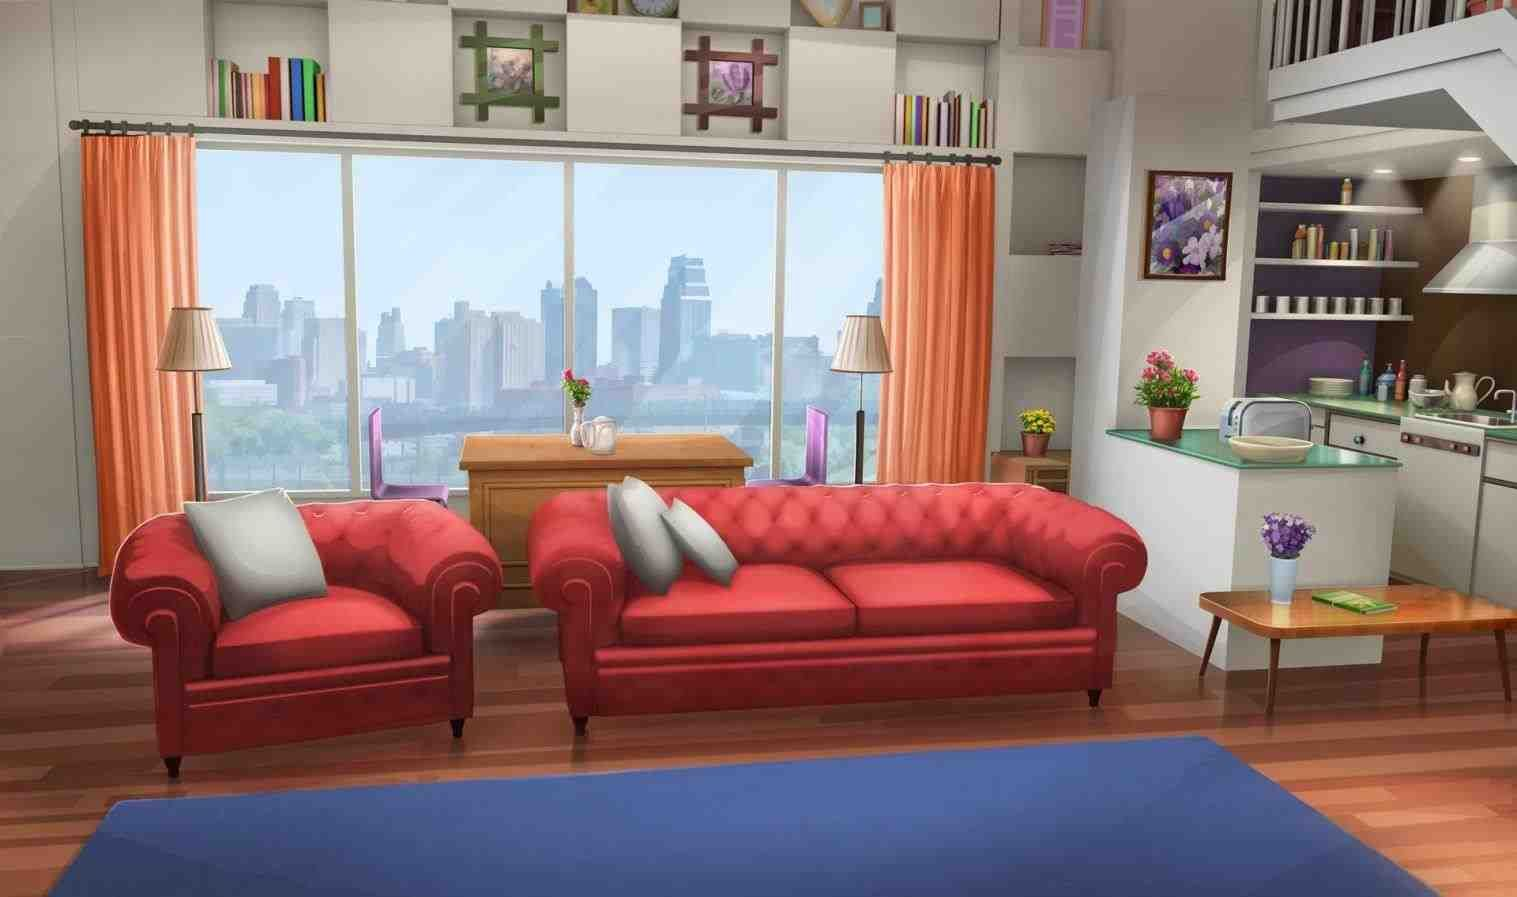 Apartment Anime Unexpected Kemono Friends Reference Full Size Of Bathroom Cozy Bedroom Decora Living Room Background Wallpaper Living Room Anime Background